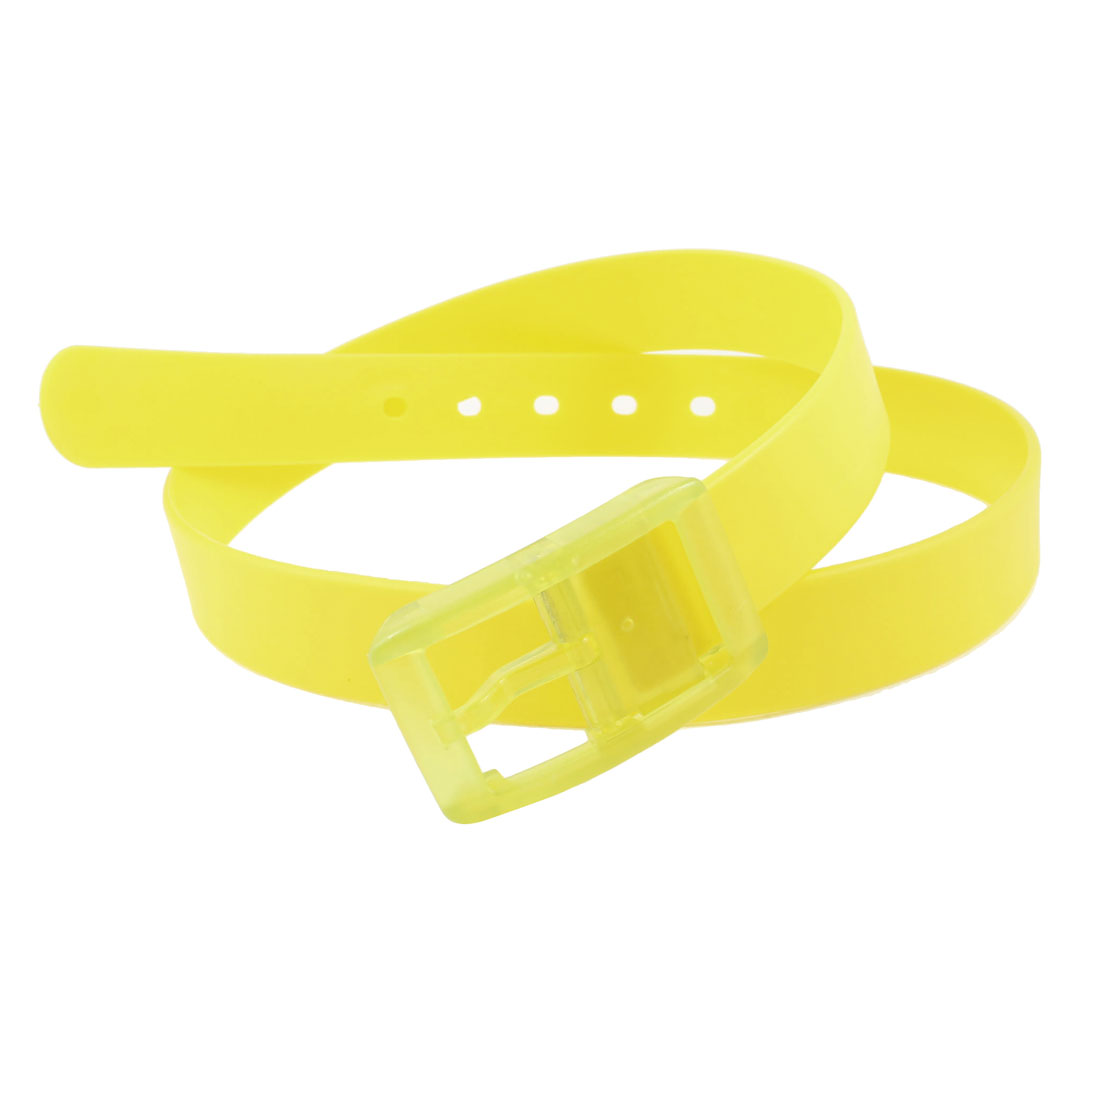 Ladies Men Single Prong Buckle 3cm Width Perforated Jelly Band Waist Belt Yellow